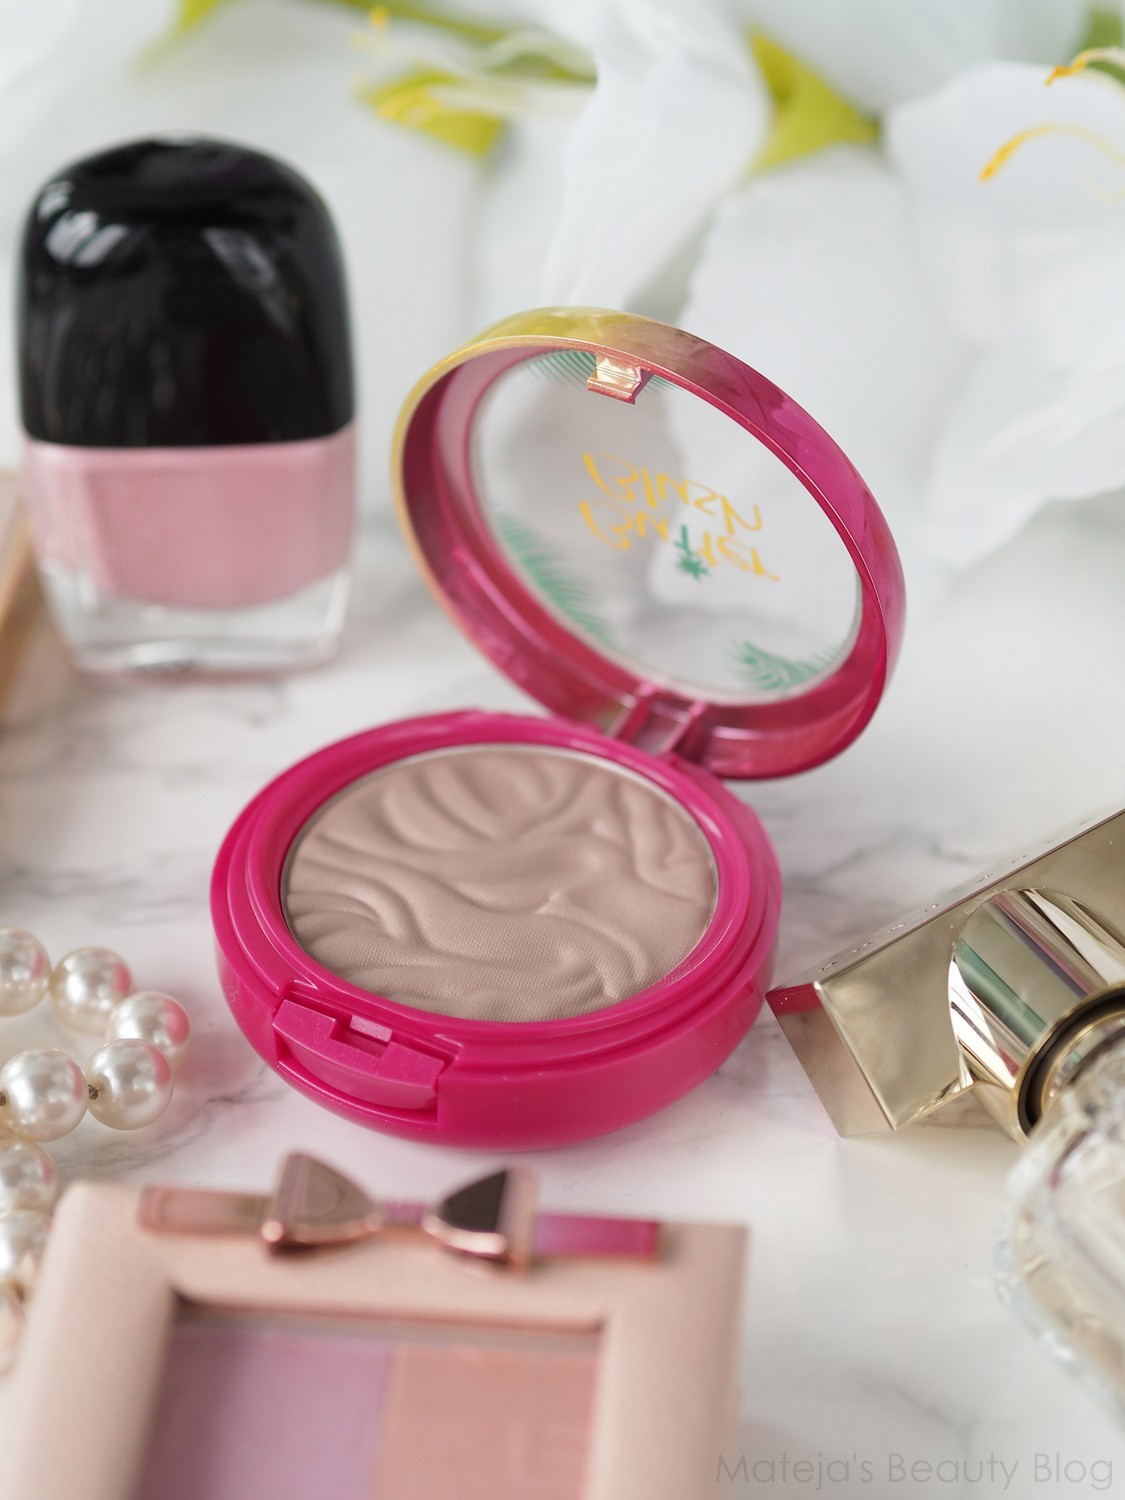 Physicians Formula Butter Blush in Plum Rose